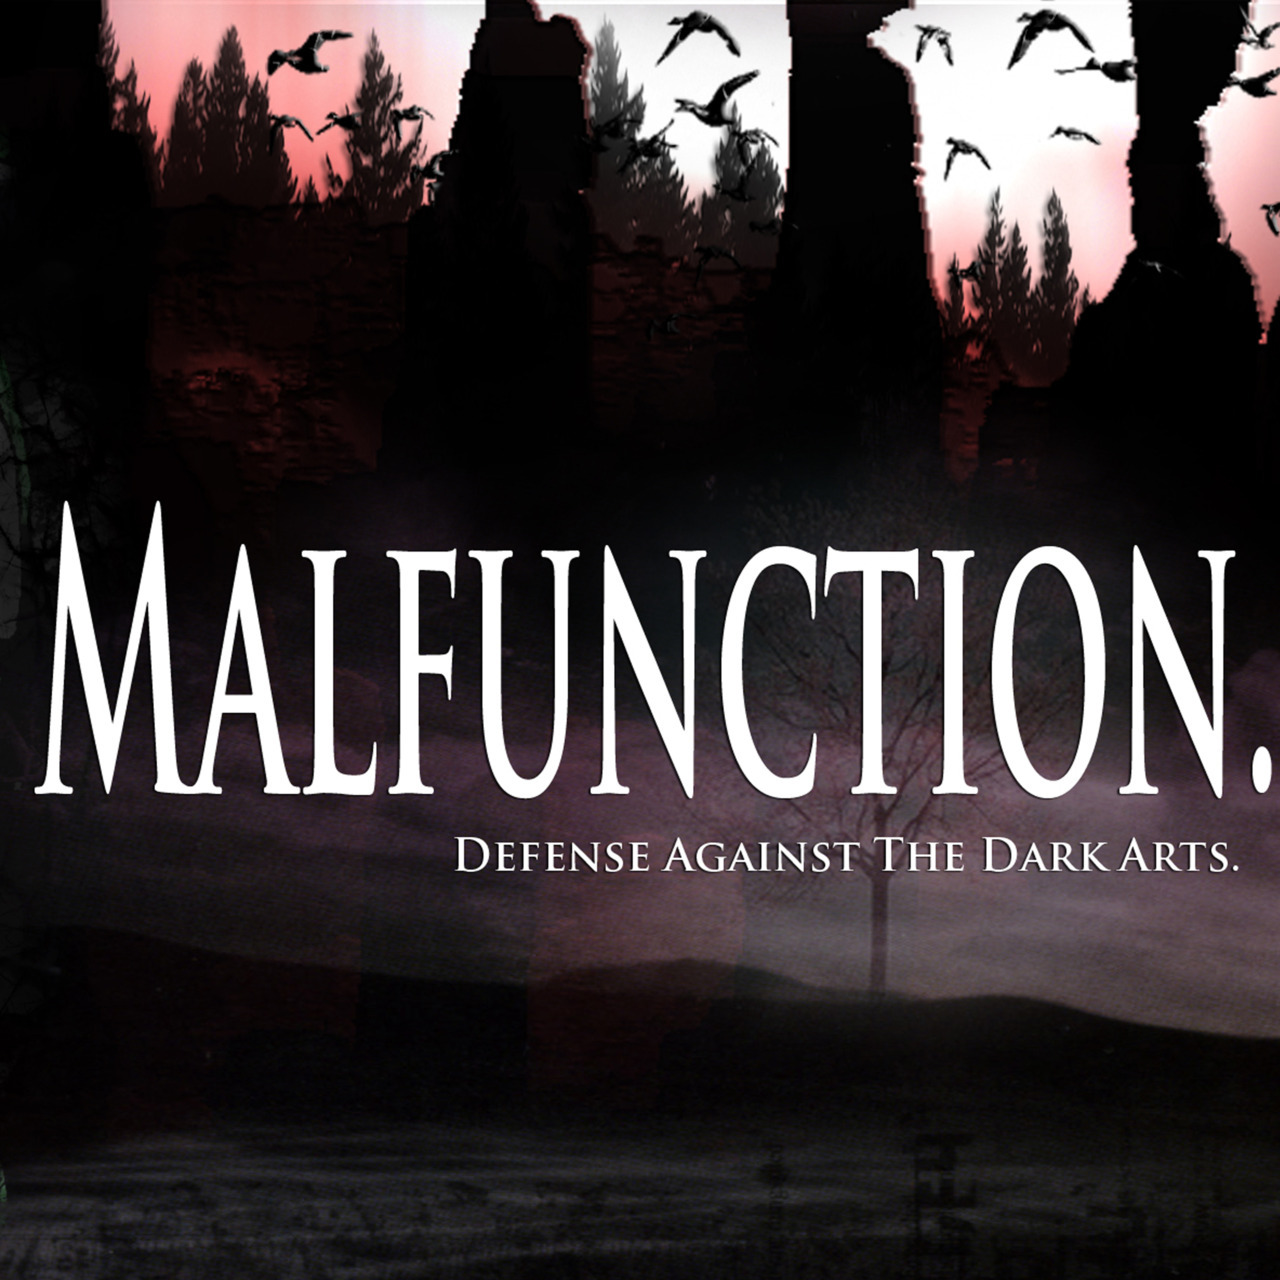 Defense Against The Dark Arts - Malfunction Free MP3 download// http://defenseagainstthedarkarts.bandcamp.com/track/malfunction https://rapidshare.com/files/841246772/Malfunction.zip http://soundcloud.com/defenseagainstthedarkarts *Included in Lucid Dreamer